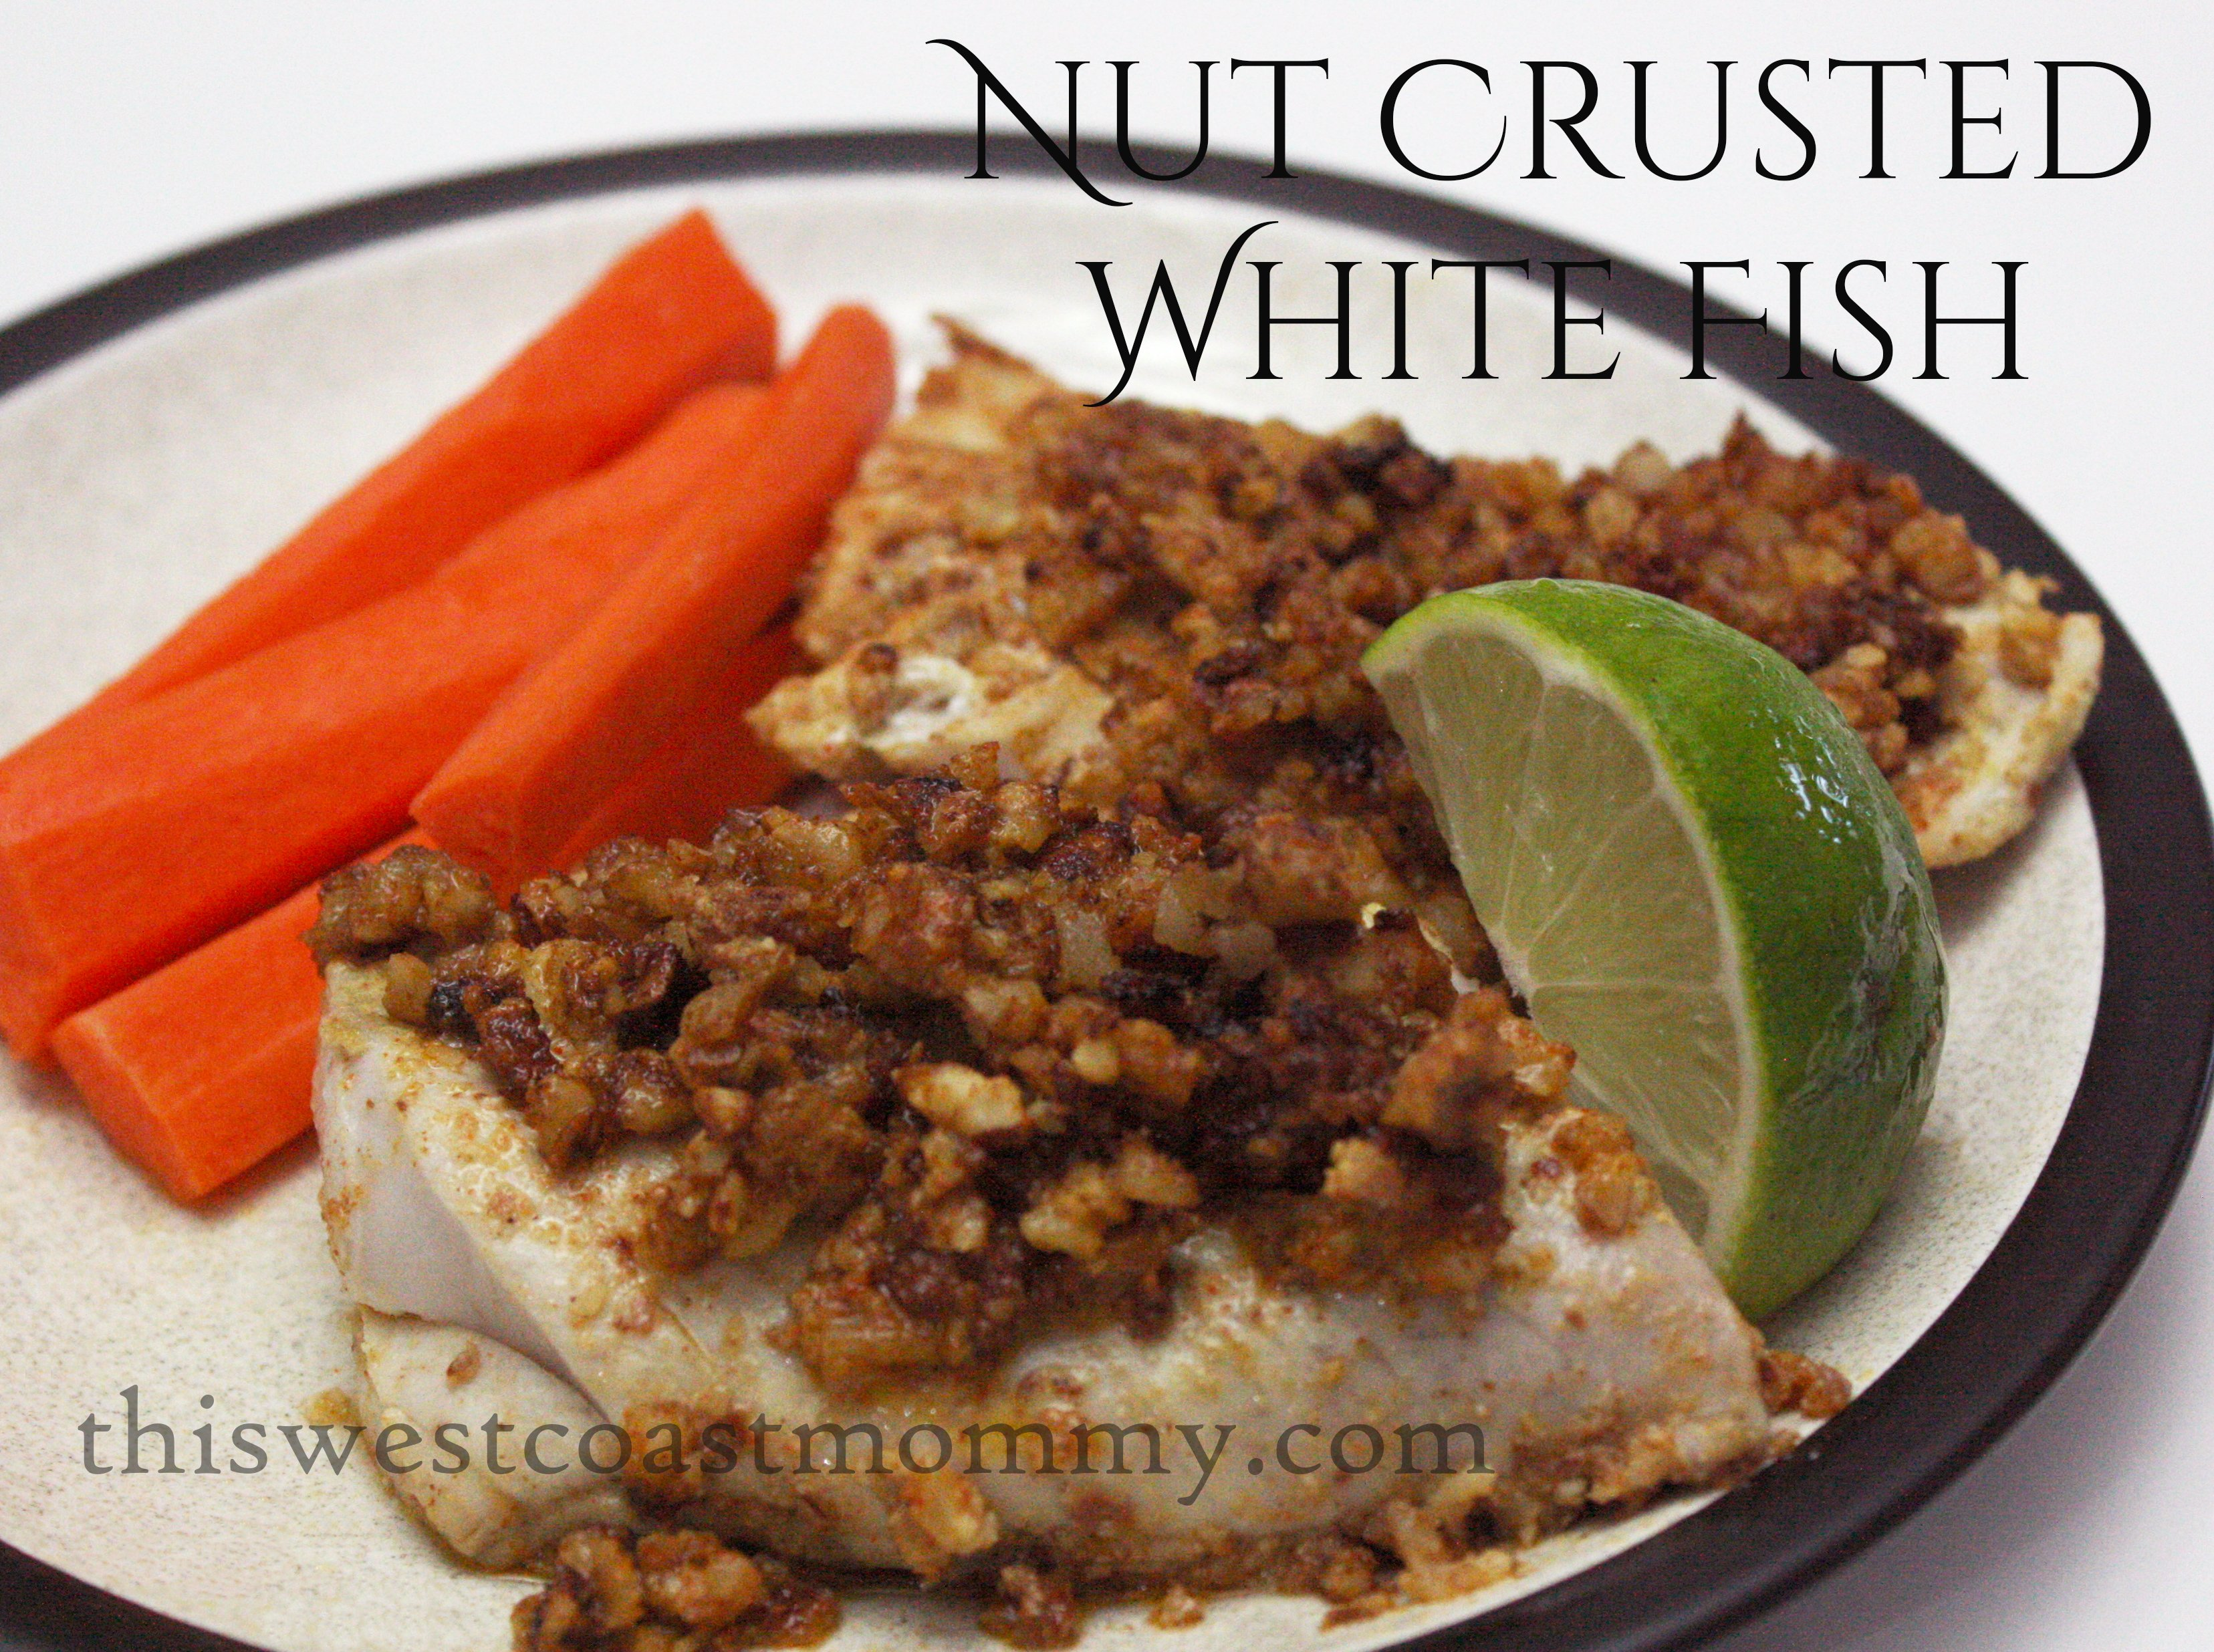 Nut crusted white fish recipe this west coast mommy for White fish recipe